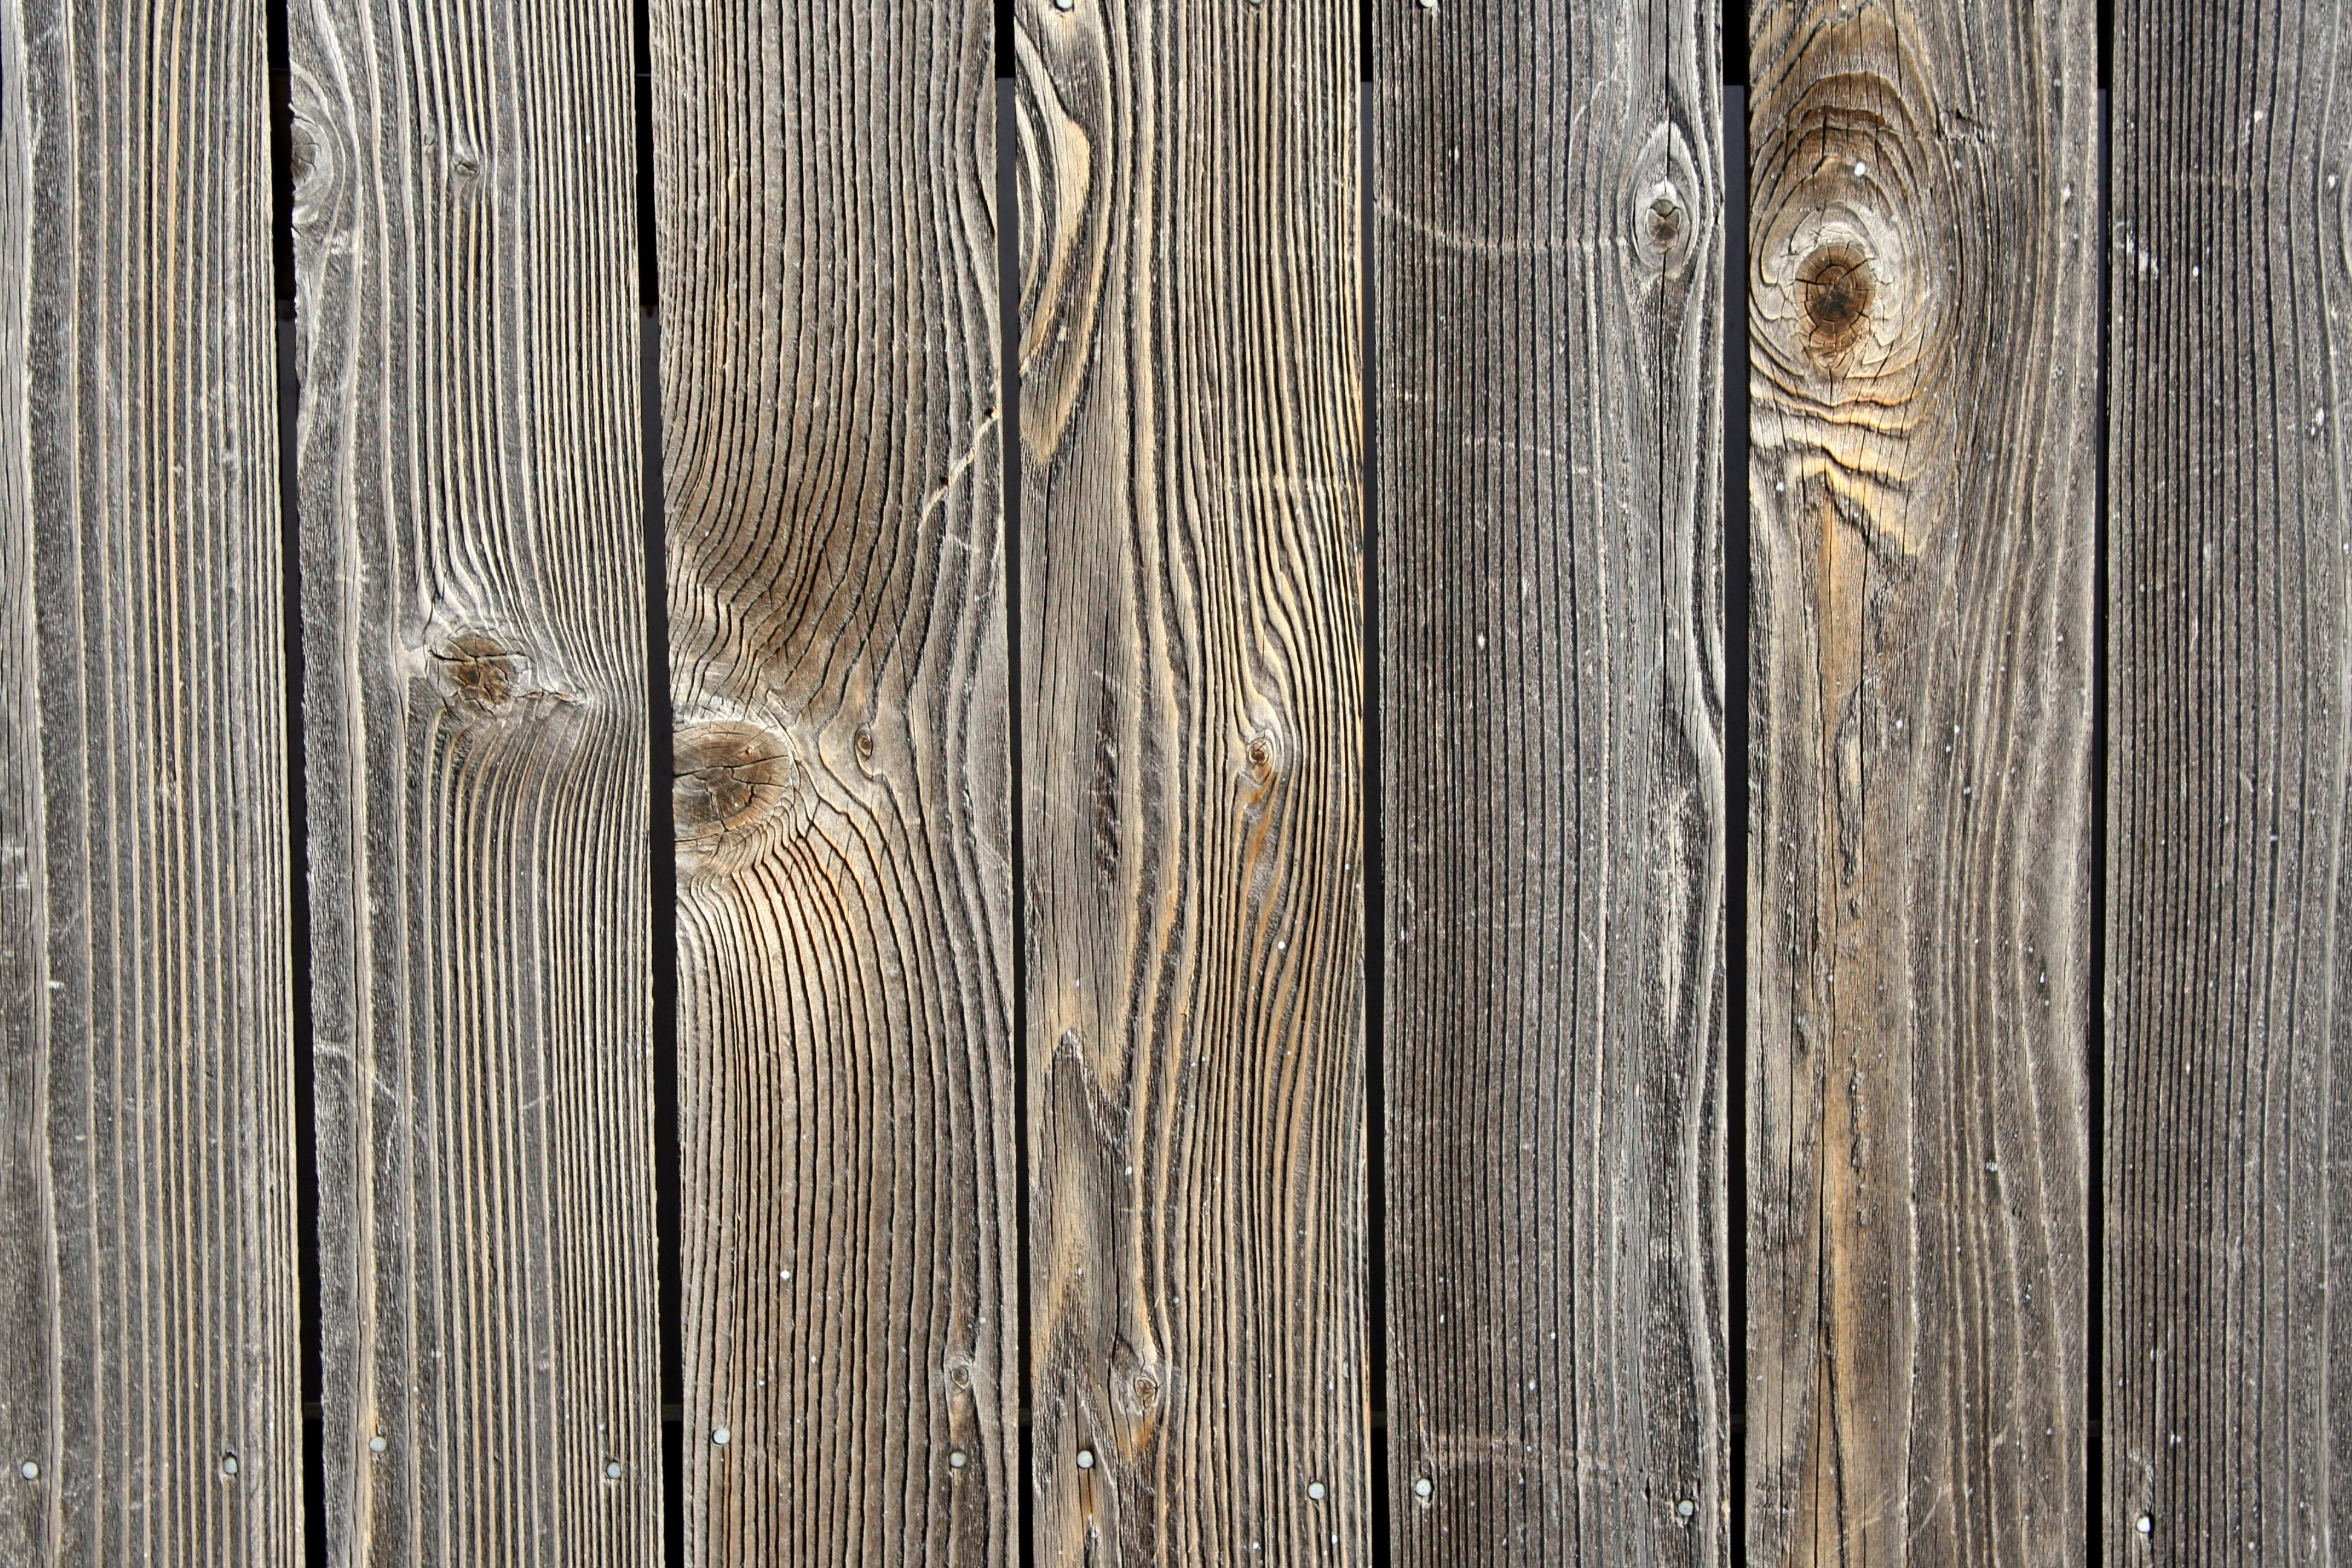 Weathered Wooden Boards Texture Picture Free Photograph